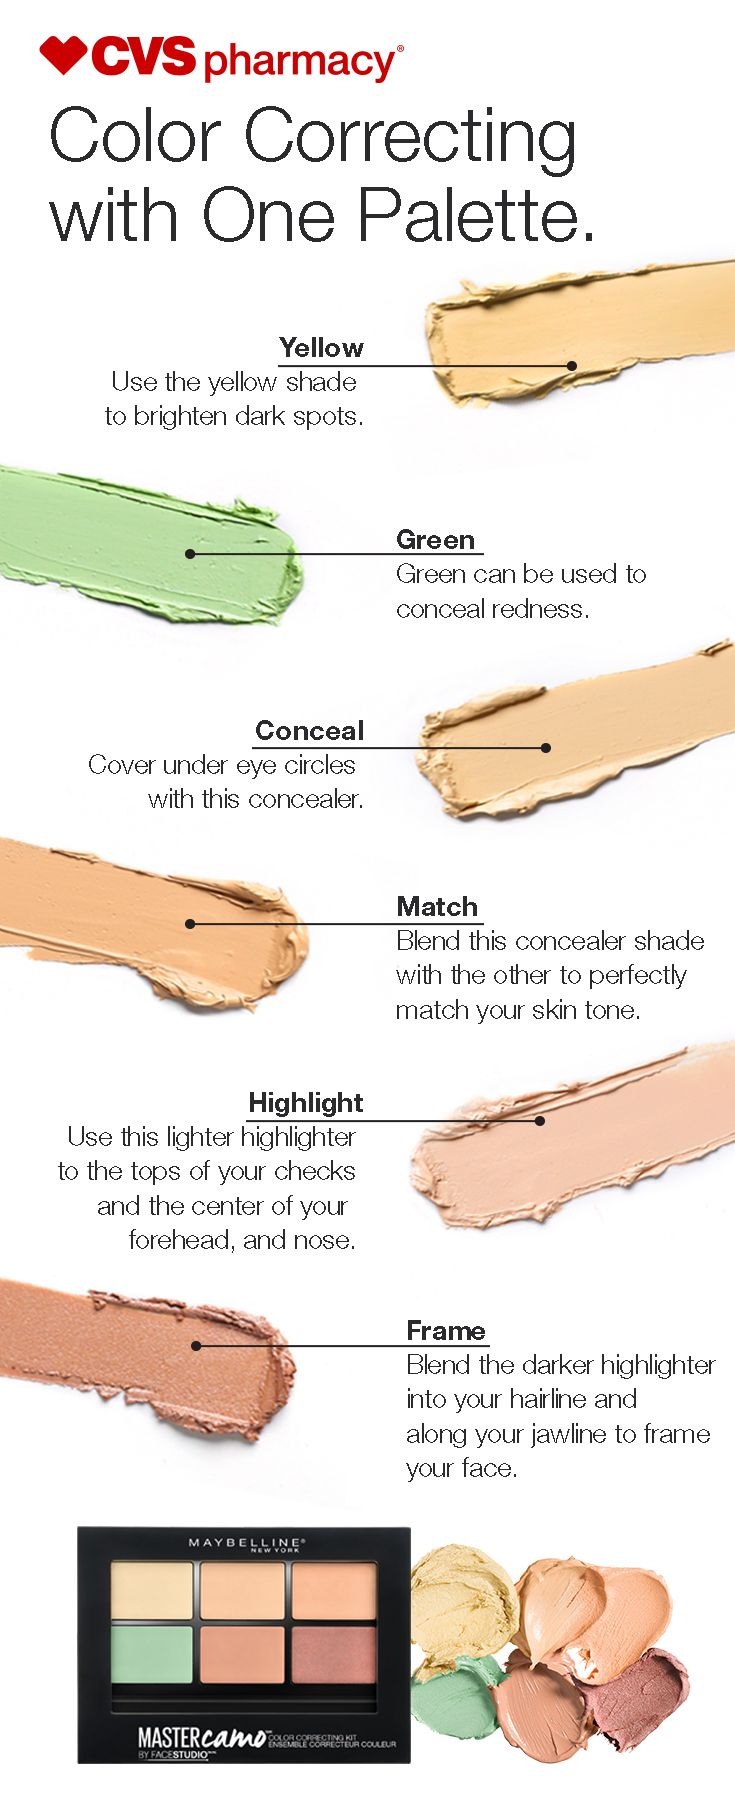 Game maker color blend - Color Correcting Is Made Easy With The Master Camo Colour Correcting Kit From Maybelline Use